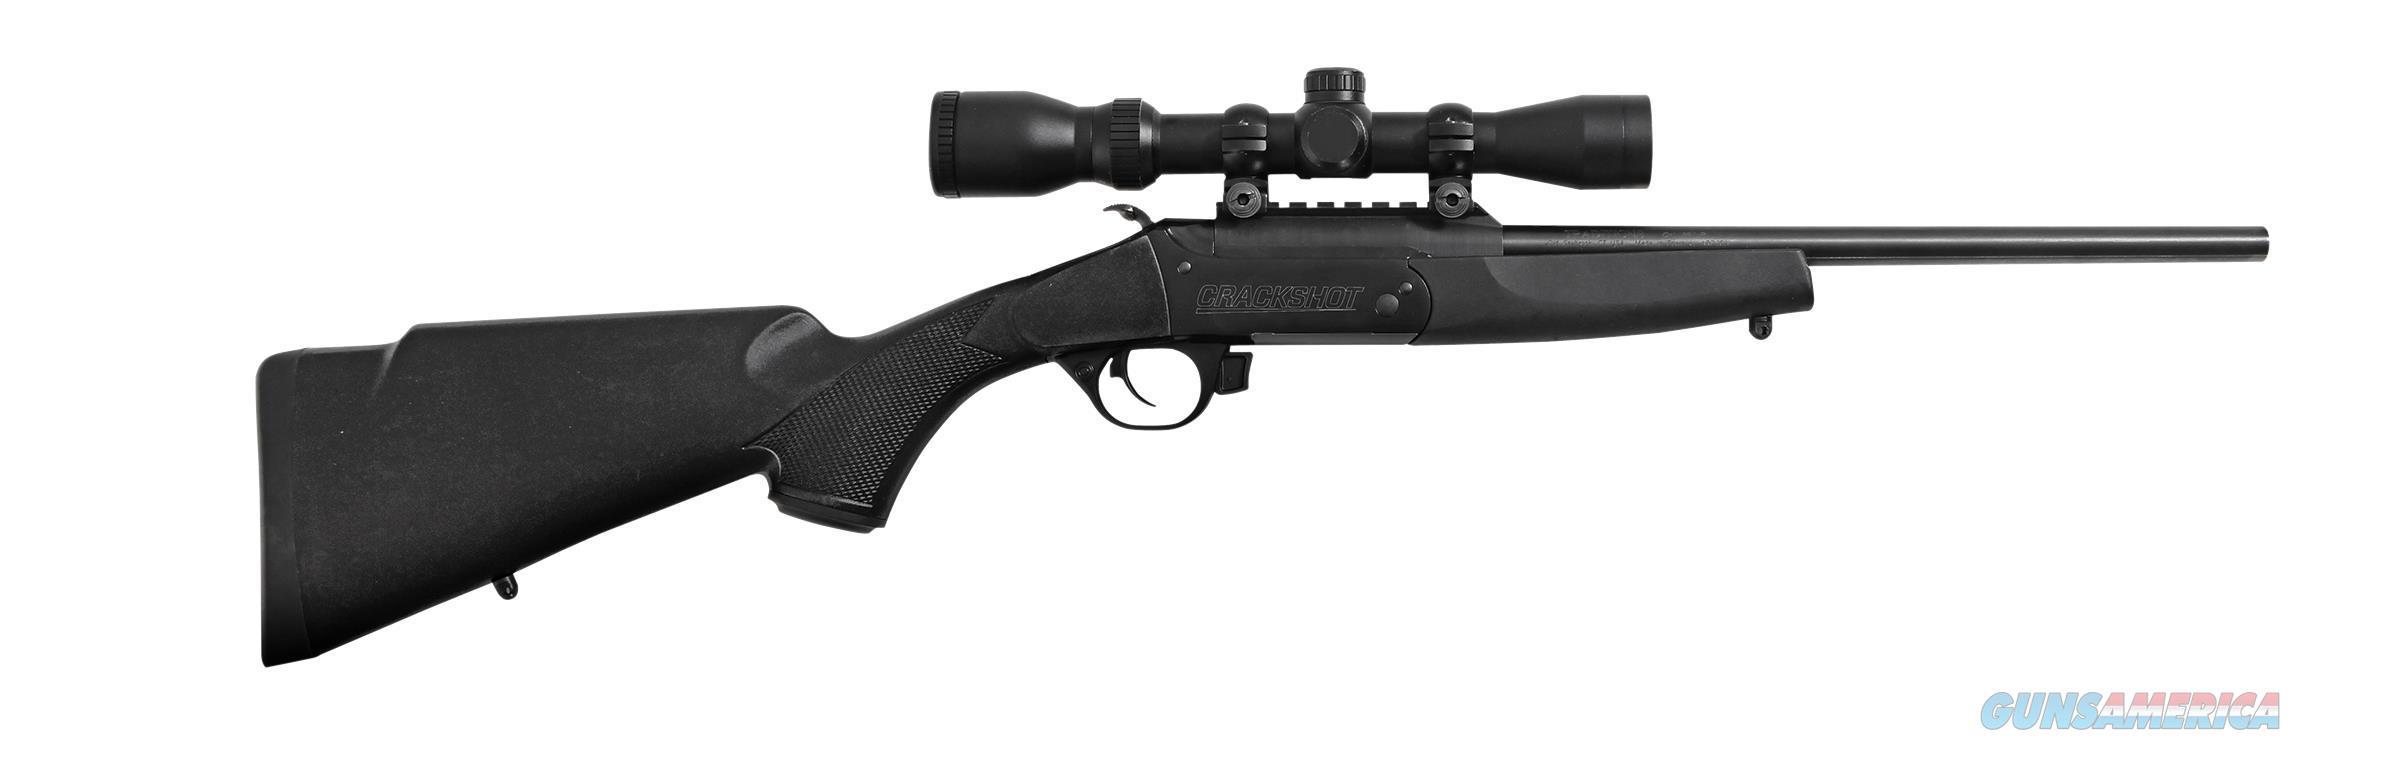 "Traditions Cr1220070 Crackshot W/Scope 22Lr 16.5"" 1Rd Black Syn Stock Blued CR1220070  Guns > Rifles > TU Misc Rifles"